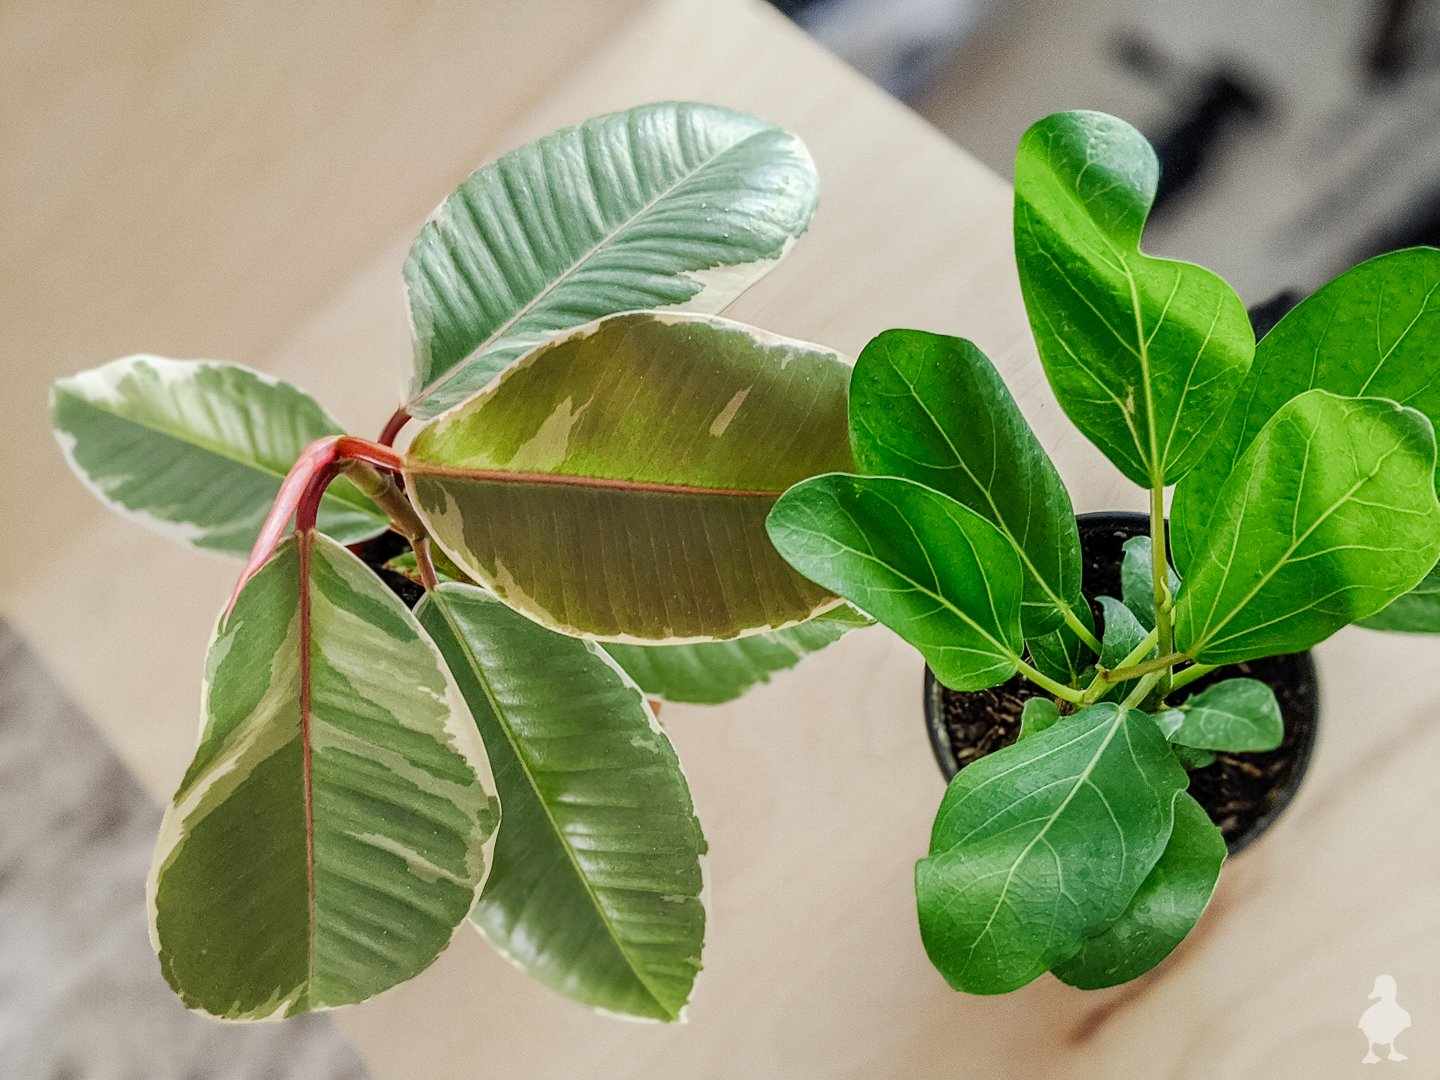 Buying Houseplants Online: What to Look For & My Fave Shops